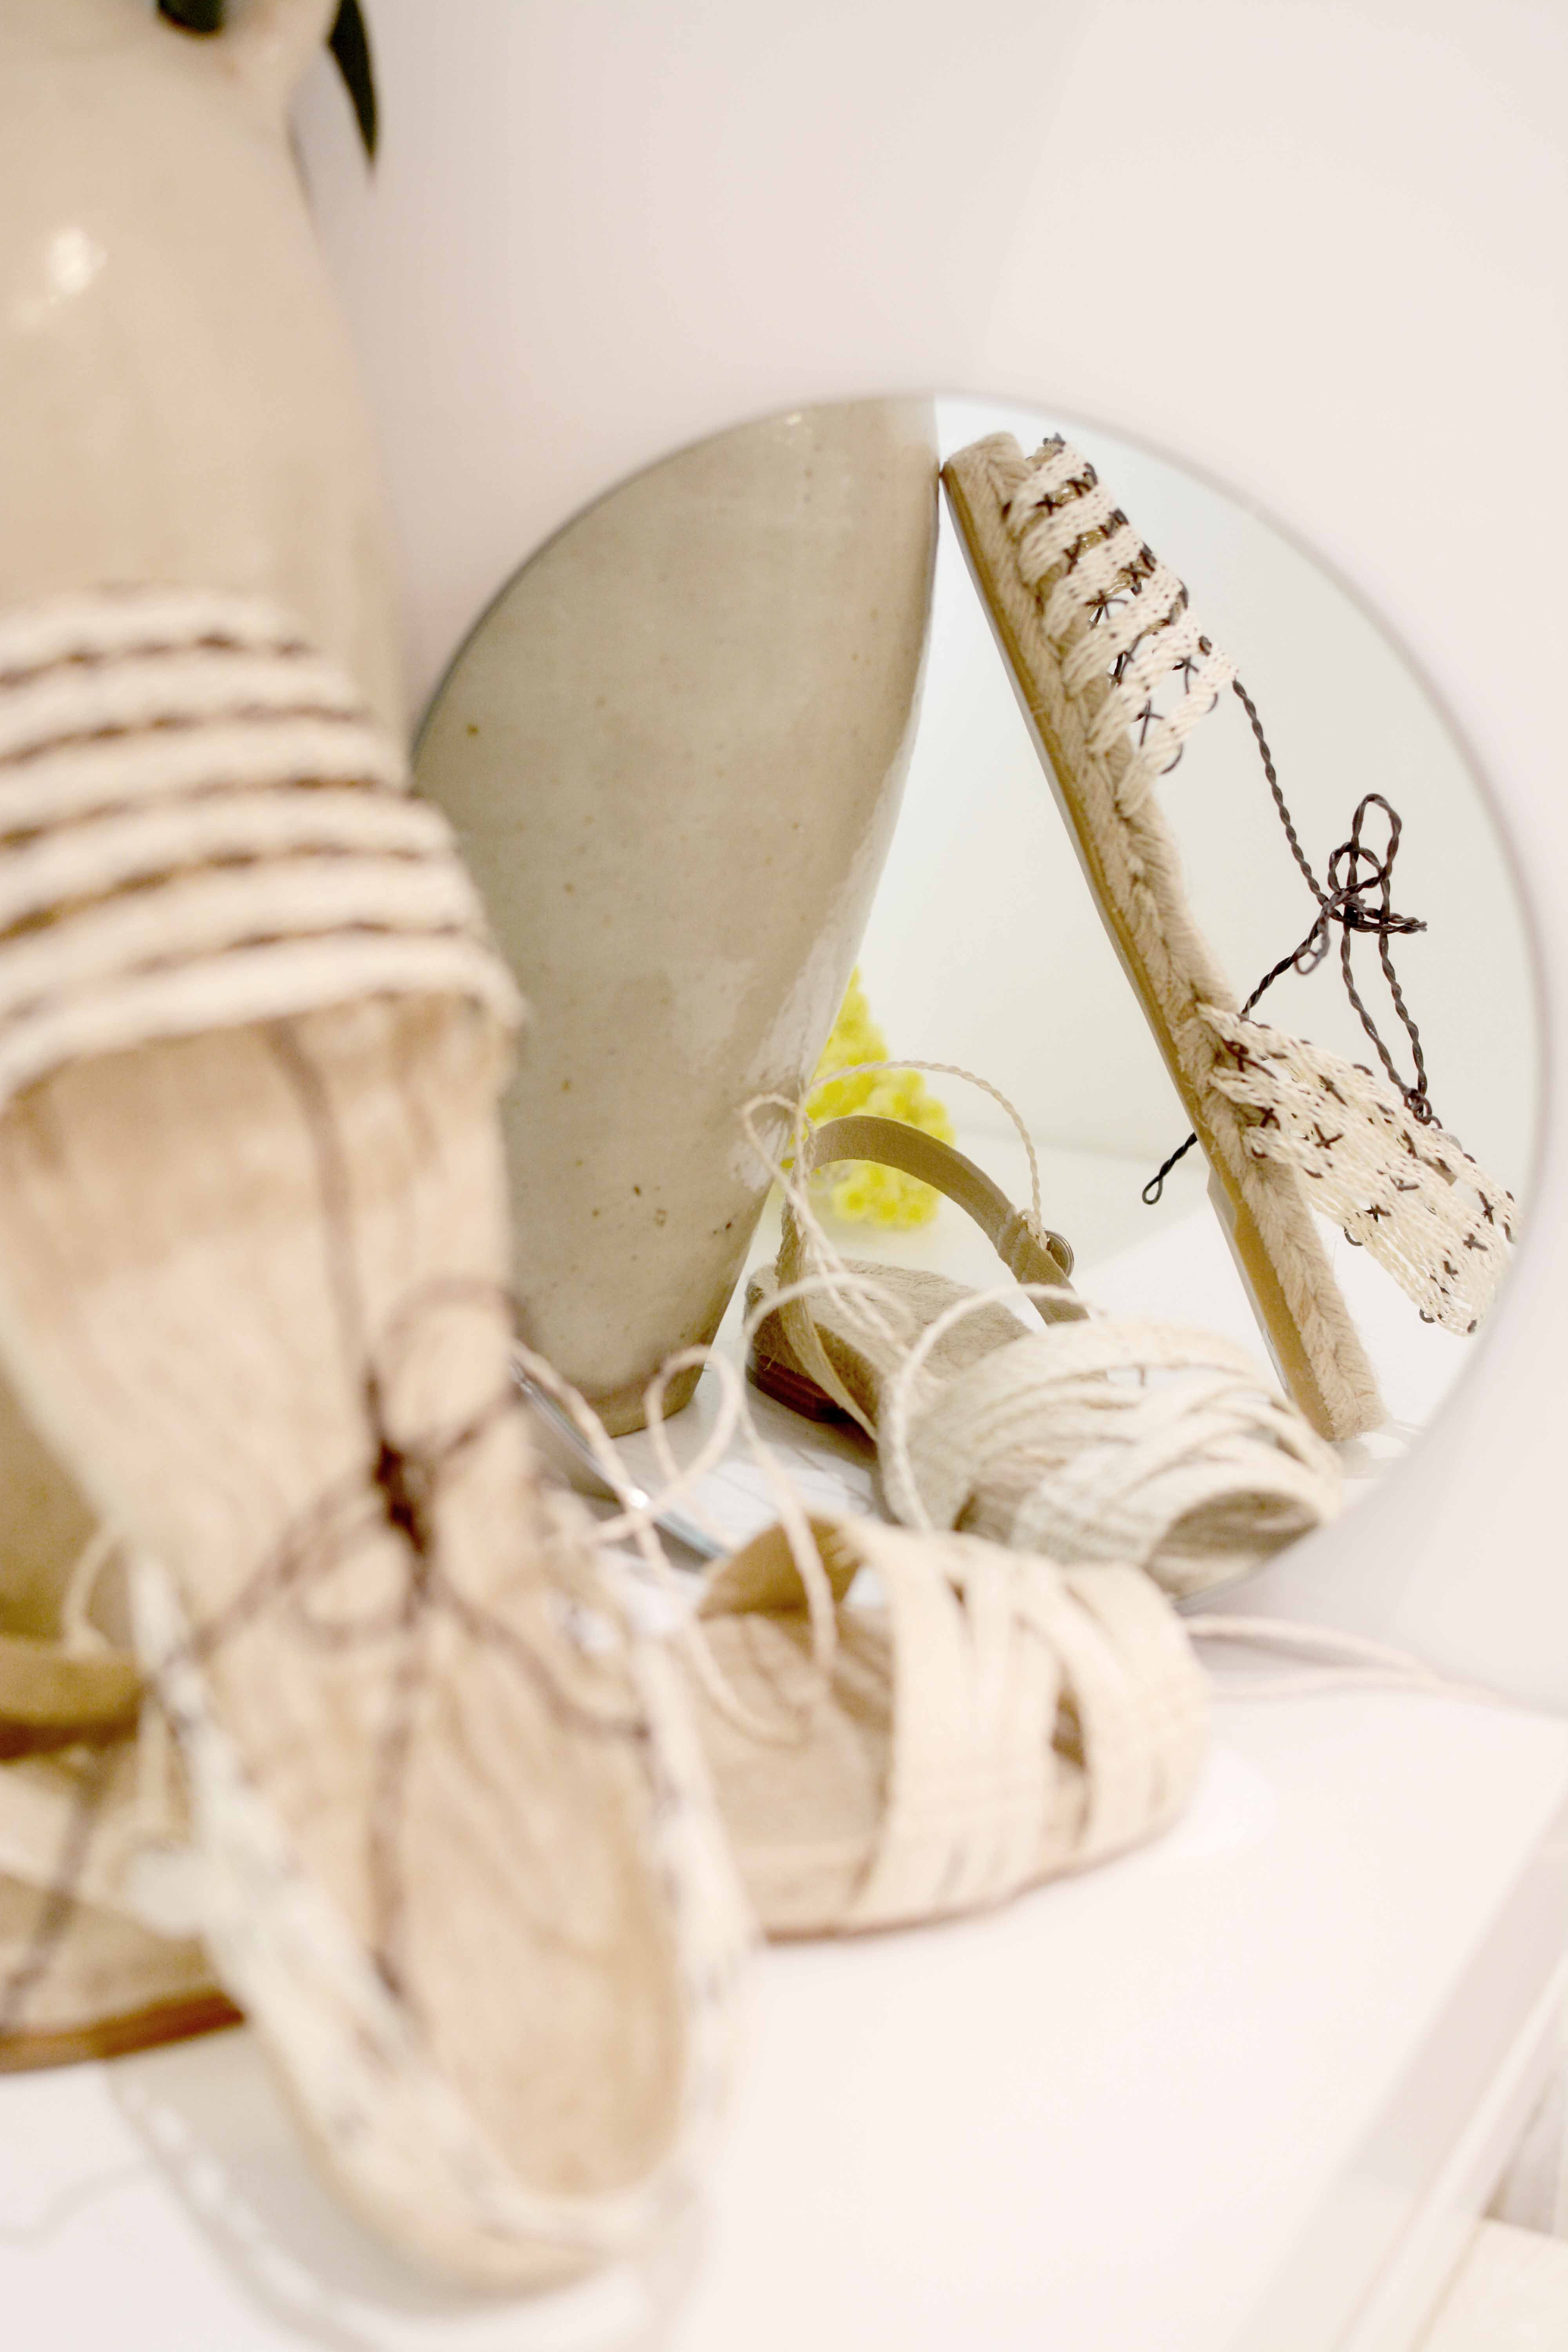 Ball Pages spanish espadrilles. Favourite summer must have sandal.